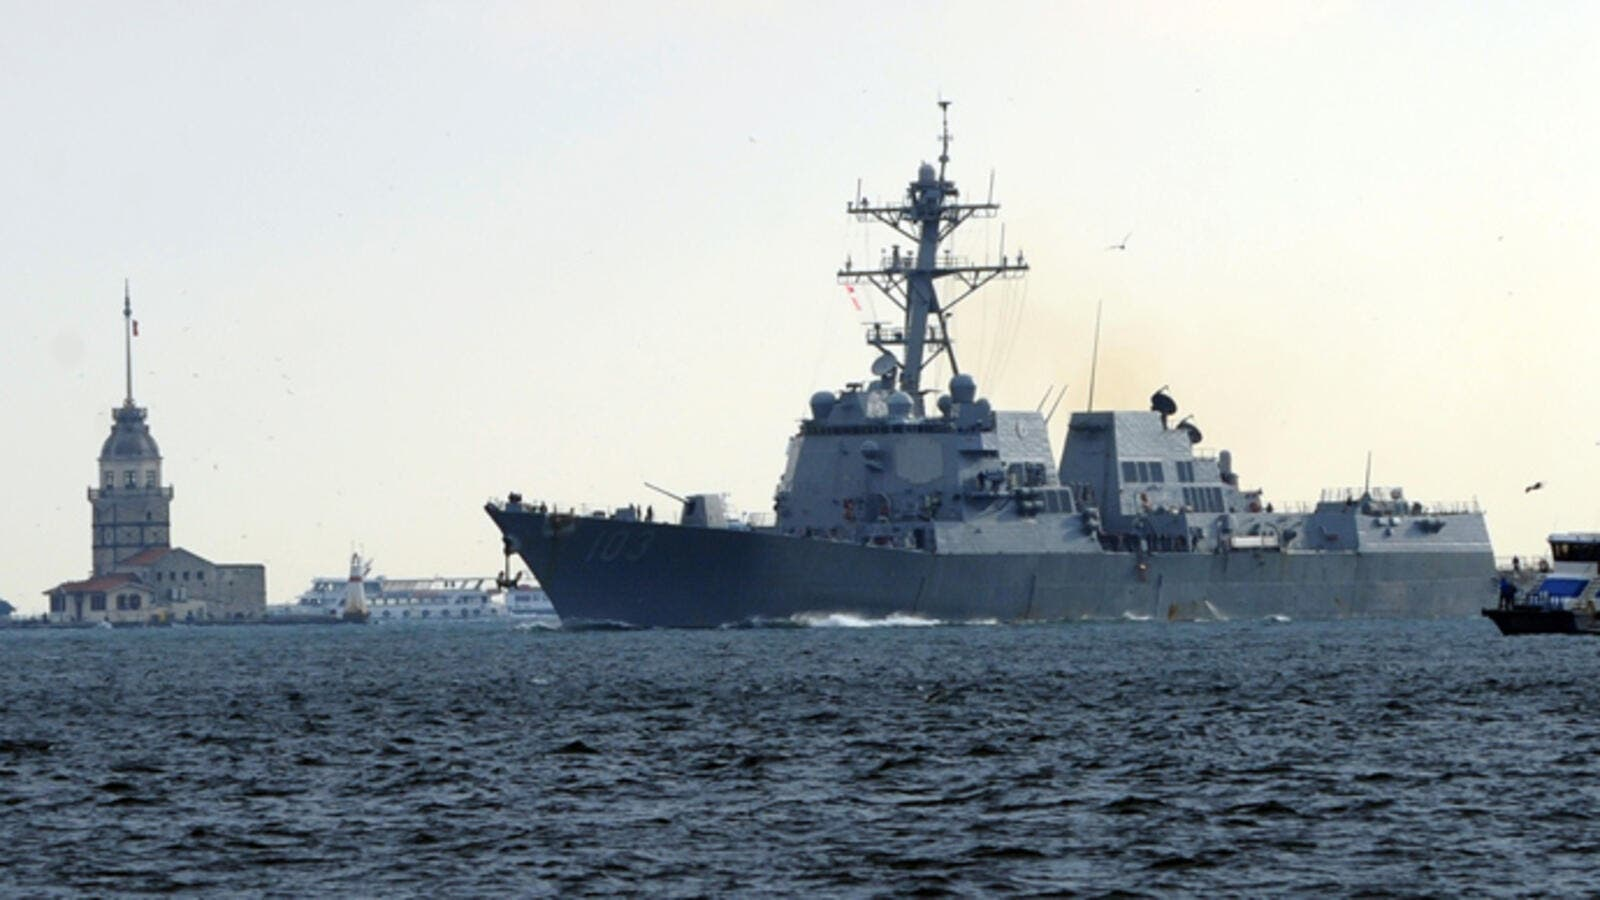 Guided-missile destroyer USS Mason was targeted off the coat of Yemen. (AFP/File)